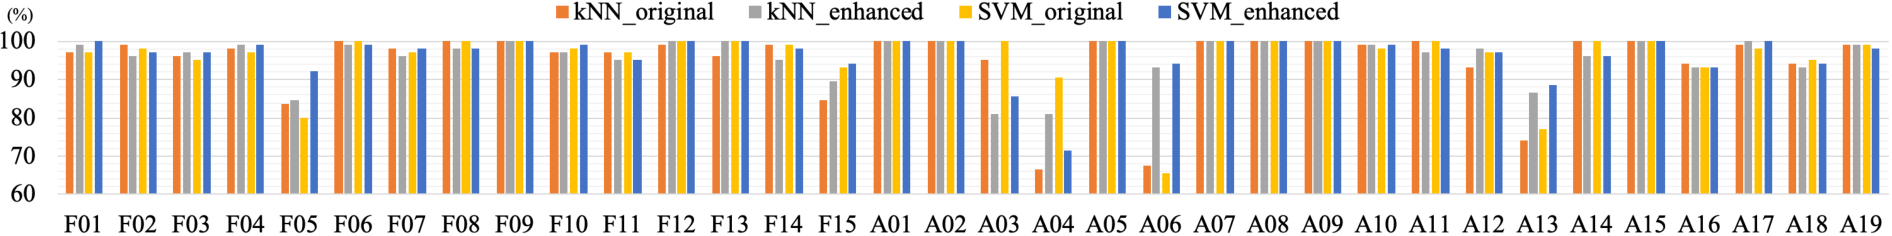 Figure 3 for Deep Learning Based Signal Enhancement of Low-Resolution Accelerometer for Fall Detection Systems